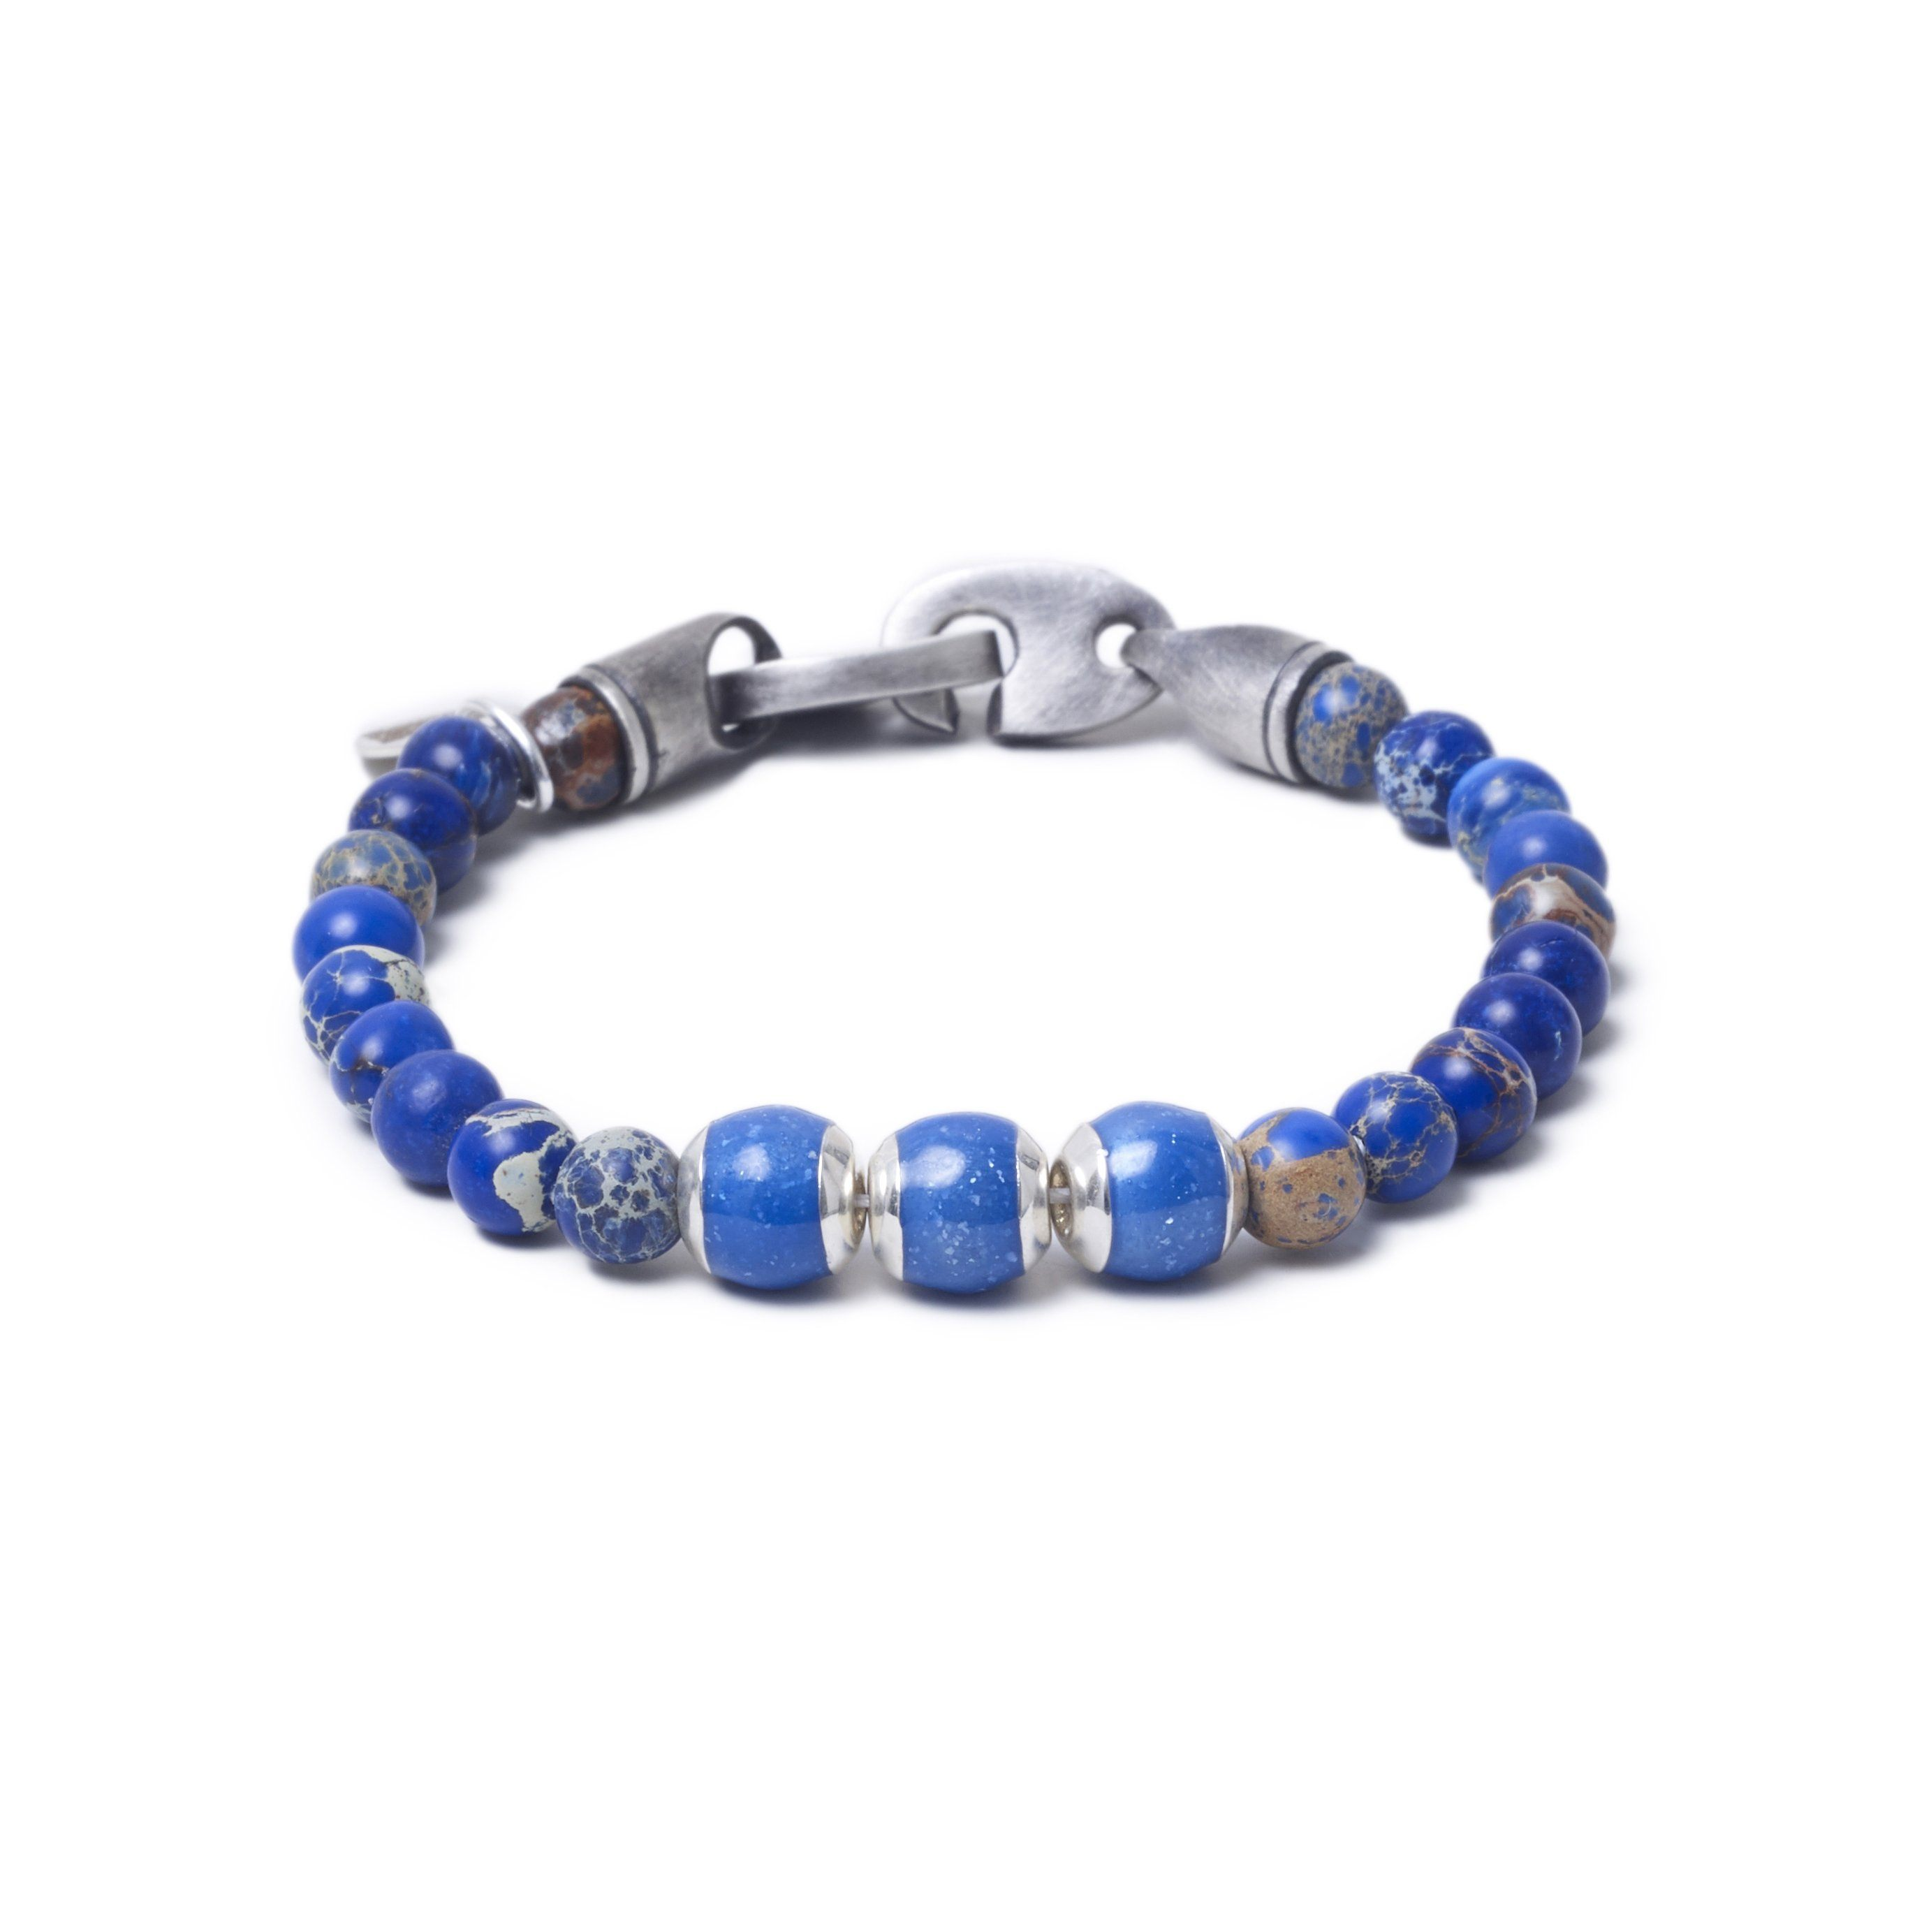 Blue Sea Jasper, Three Everence Beads everence.life Blue Brummel Hook 7